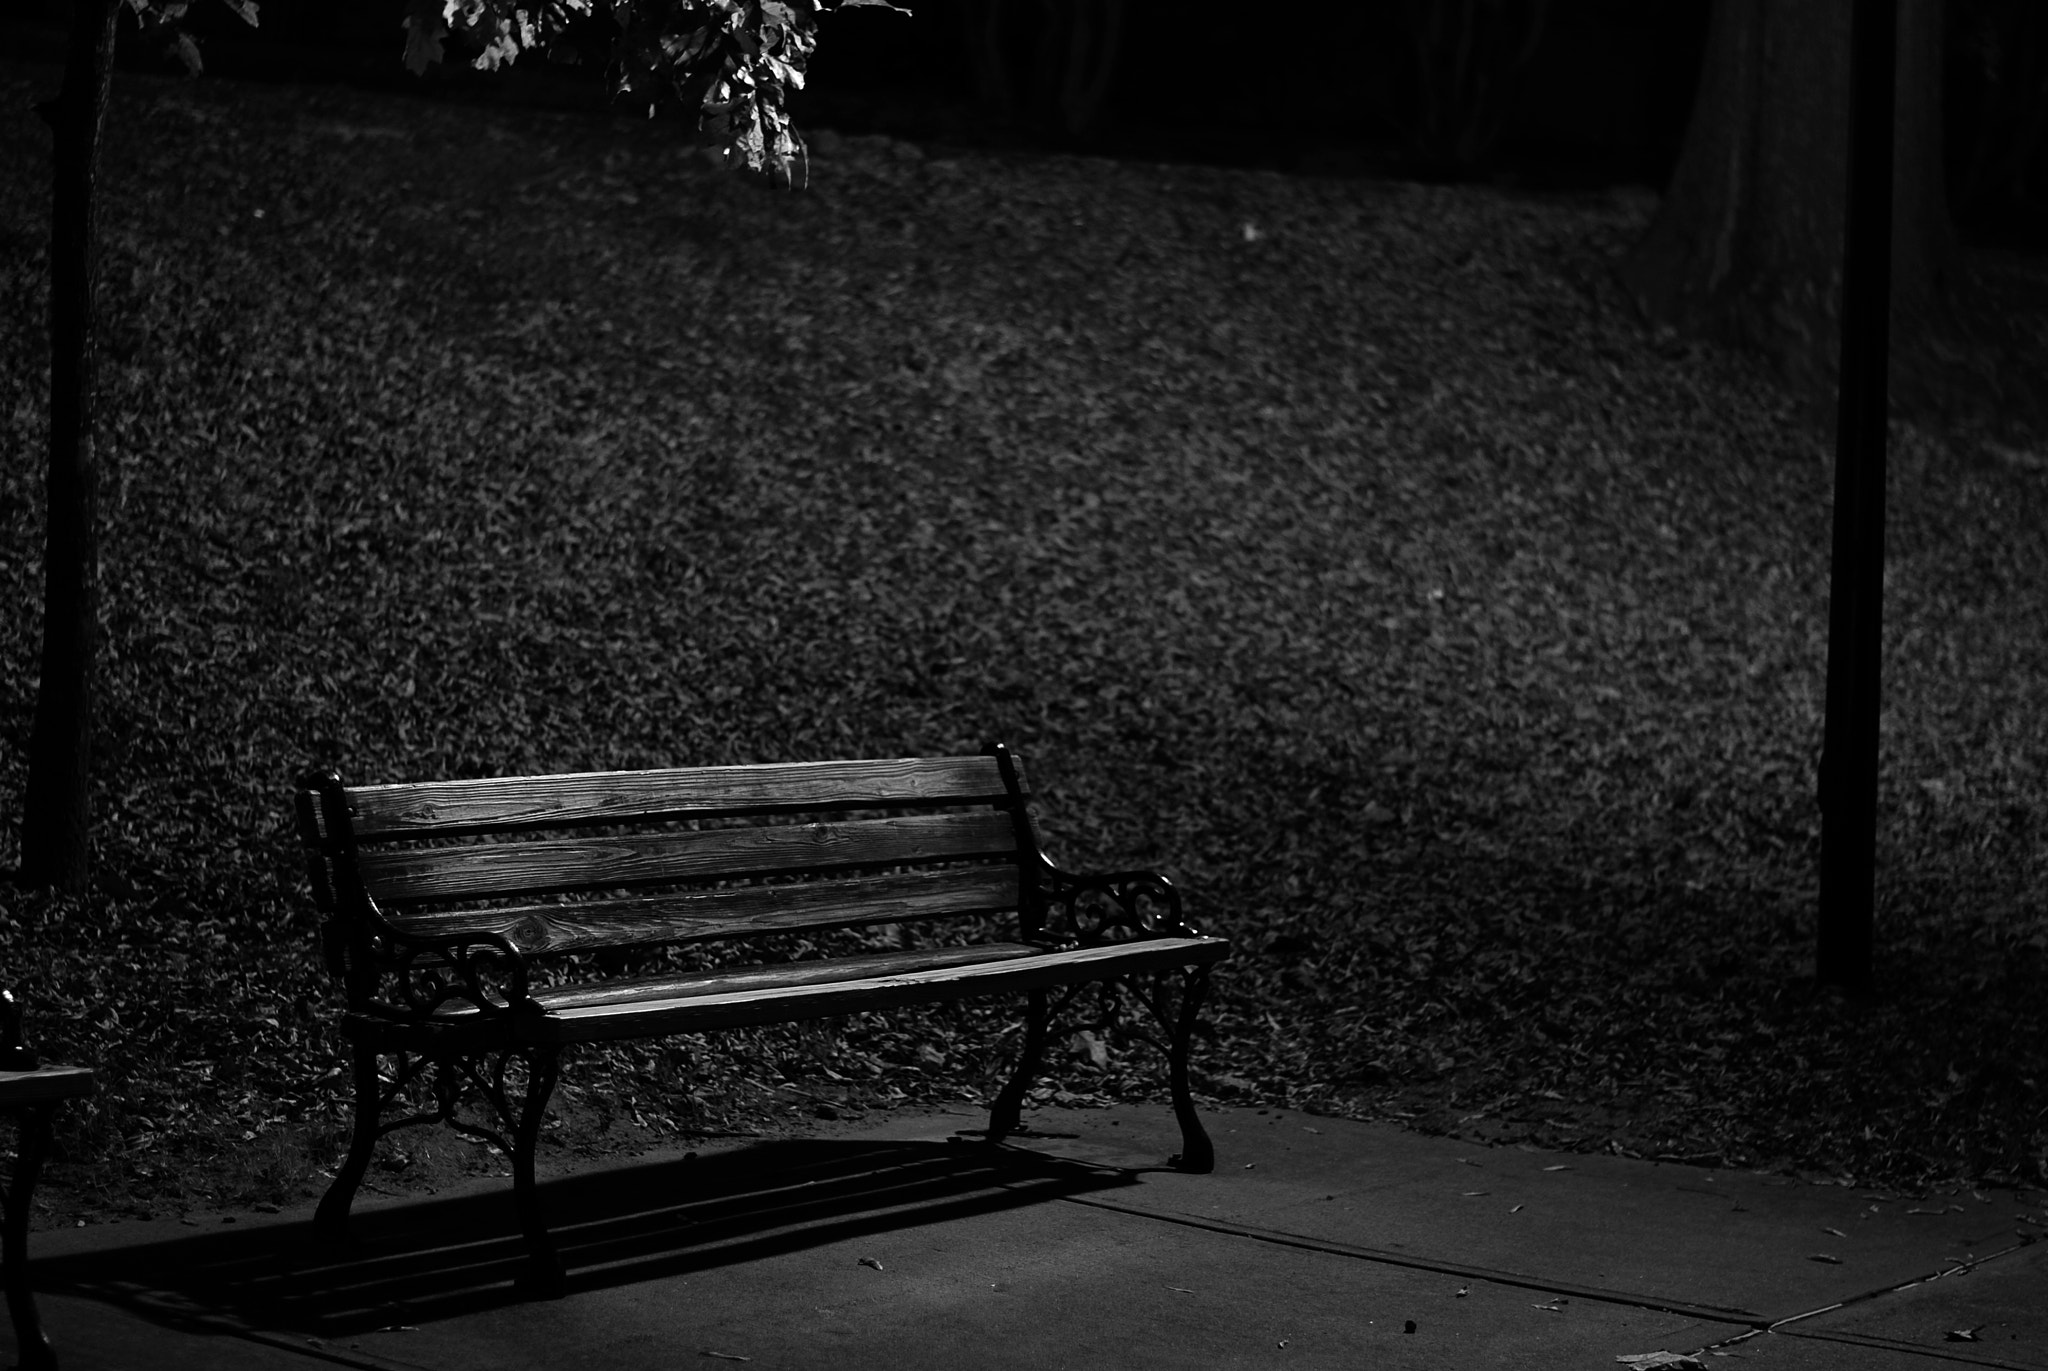 Photograph bench by Kyle Pulikowski on 500px